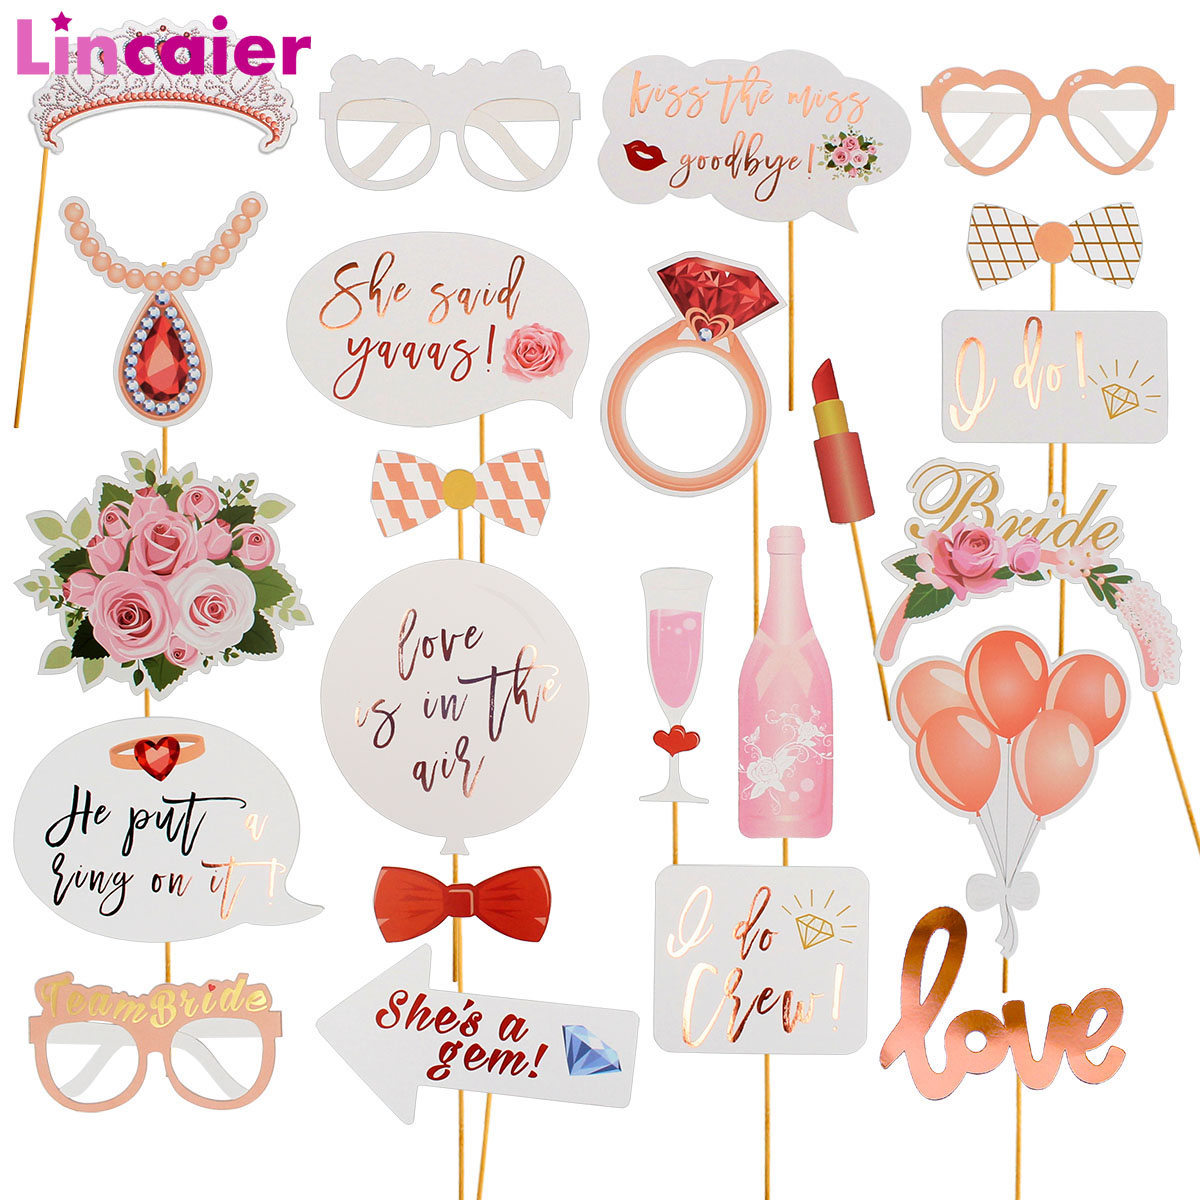 Lincaier Wedding Photo Booth Props Just Married Photobooth